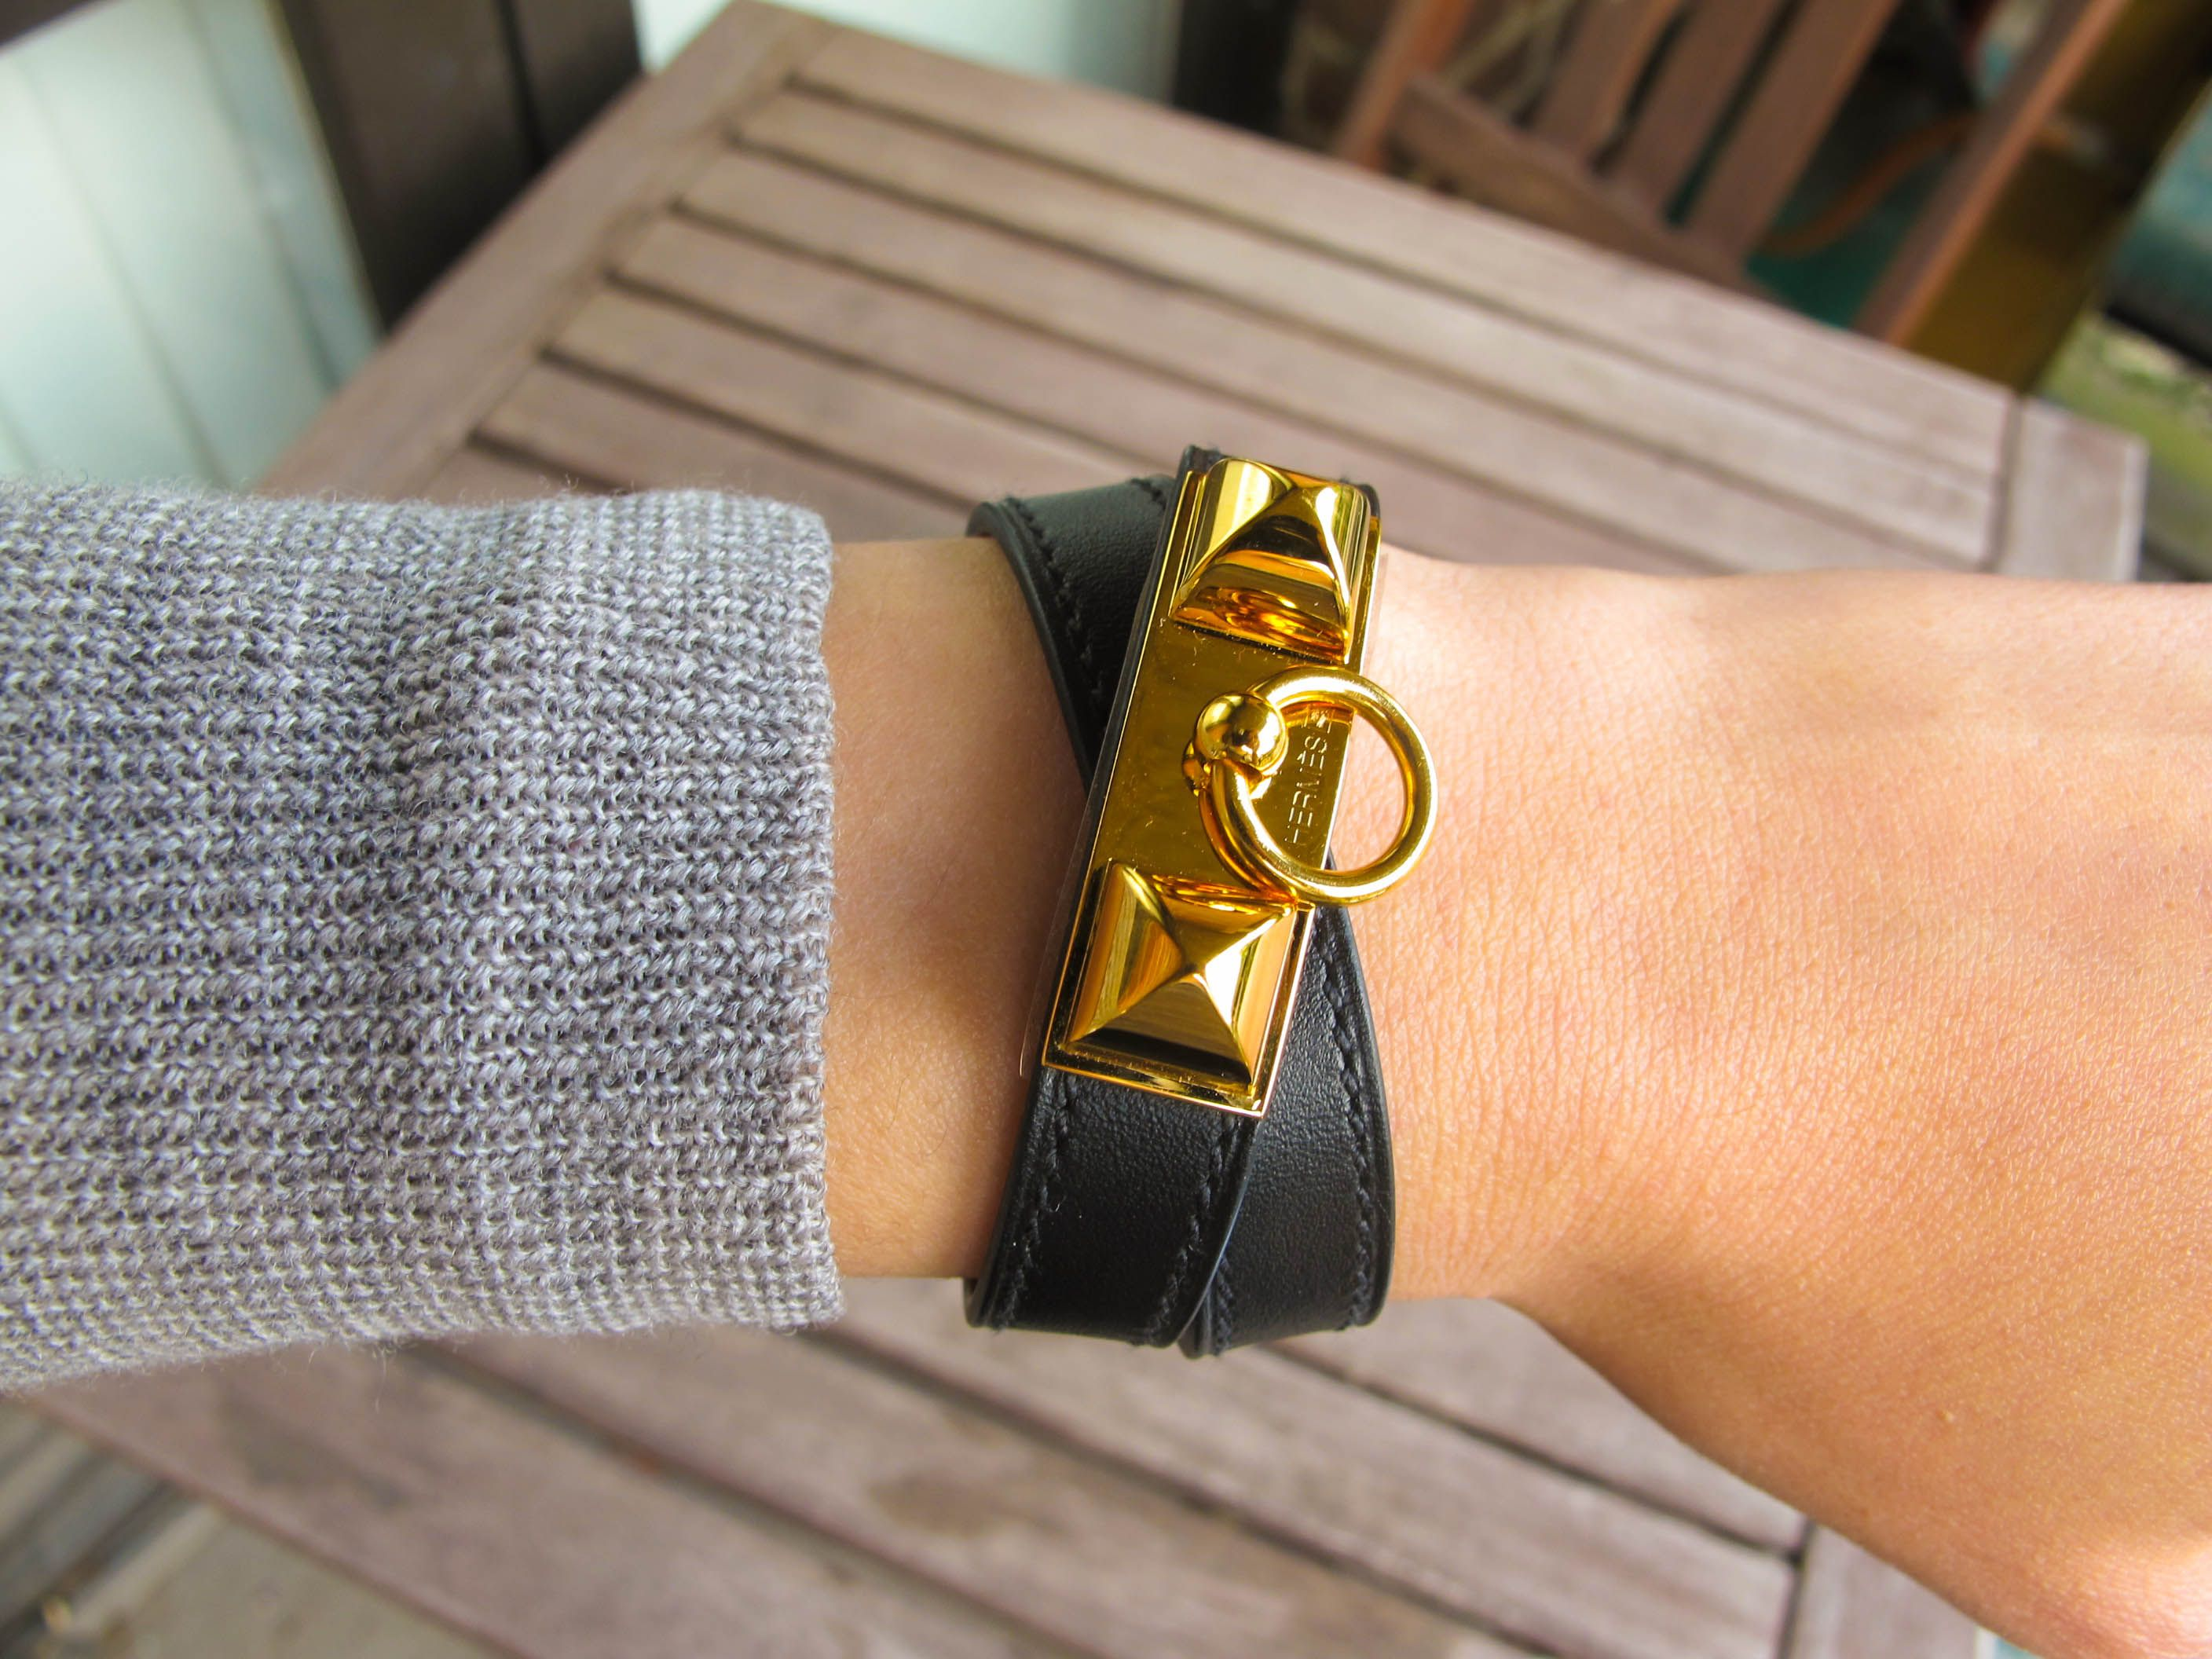 e086f34fa85 Hermes Rivale Leather Wrap Bracelet in Black Leather and Gold Hardware